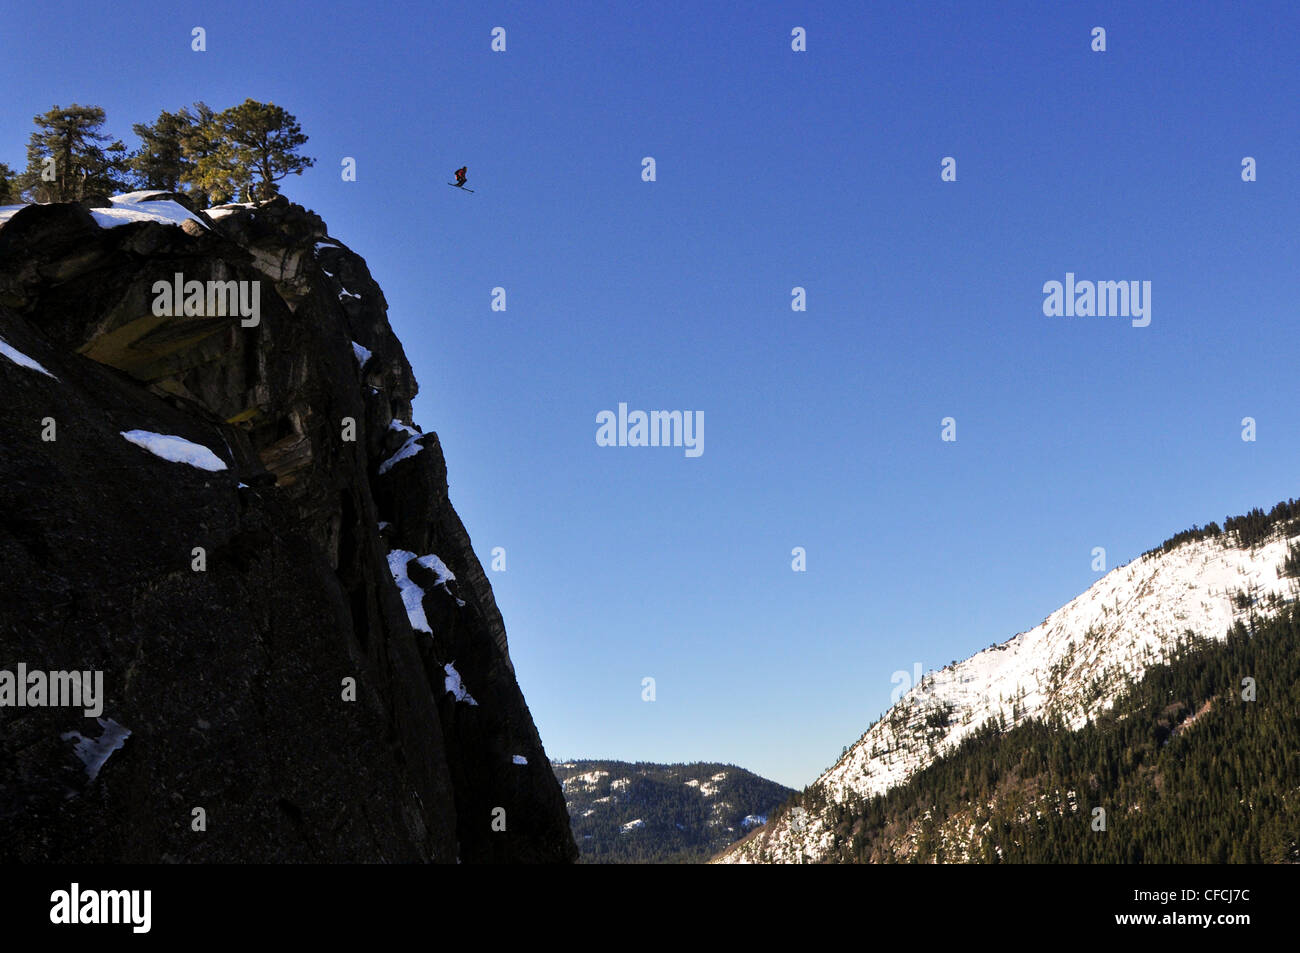 Pro skier Josh Daiek performs a double backflip ski BASE jumping off of Lovers Leap in Strawberry, CA. - Stock Image